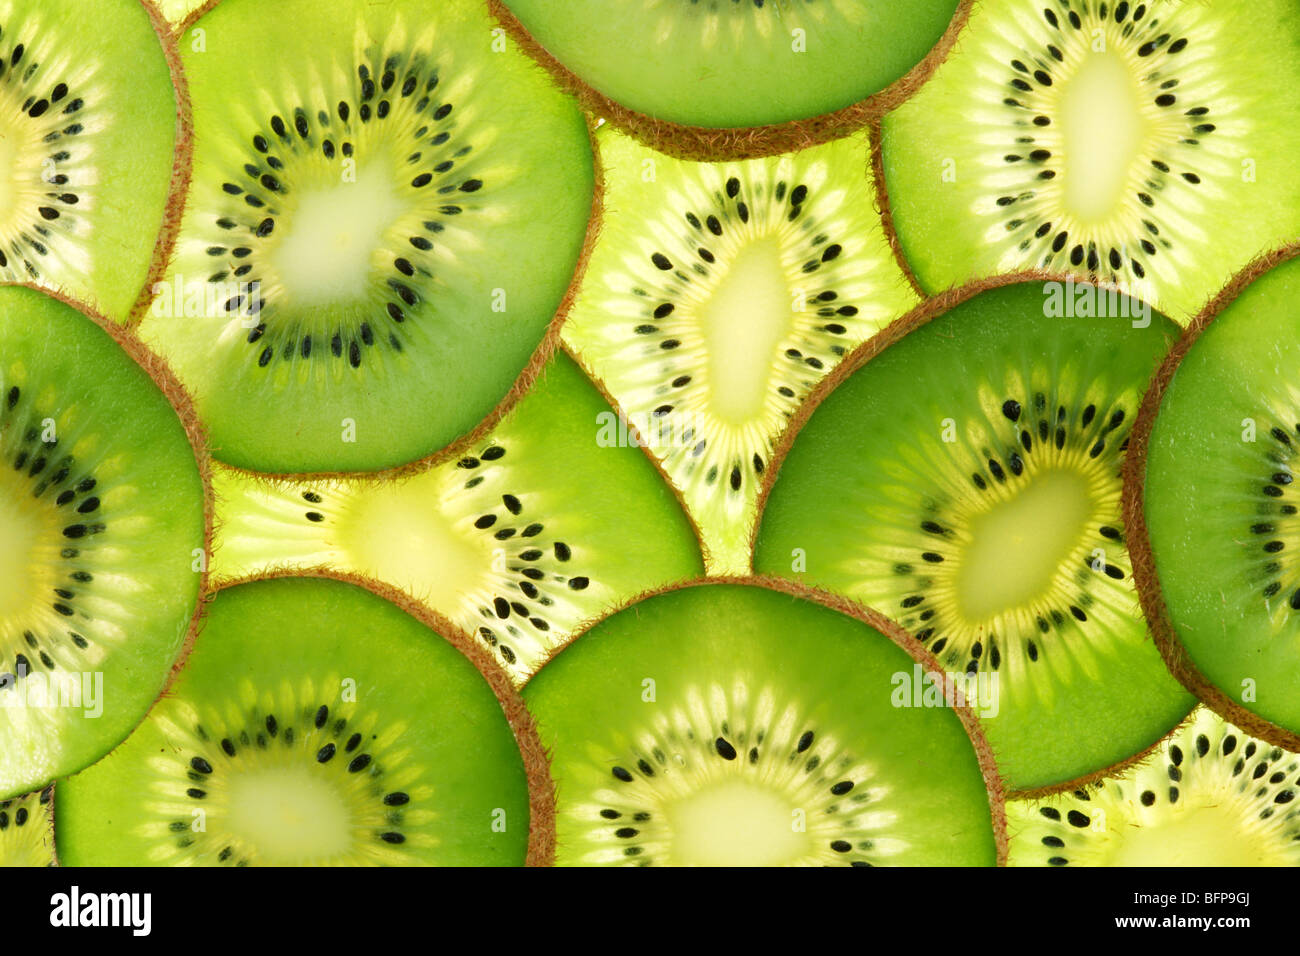 Back projected (lighted) cross sections of kiwi - Stock Image